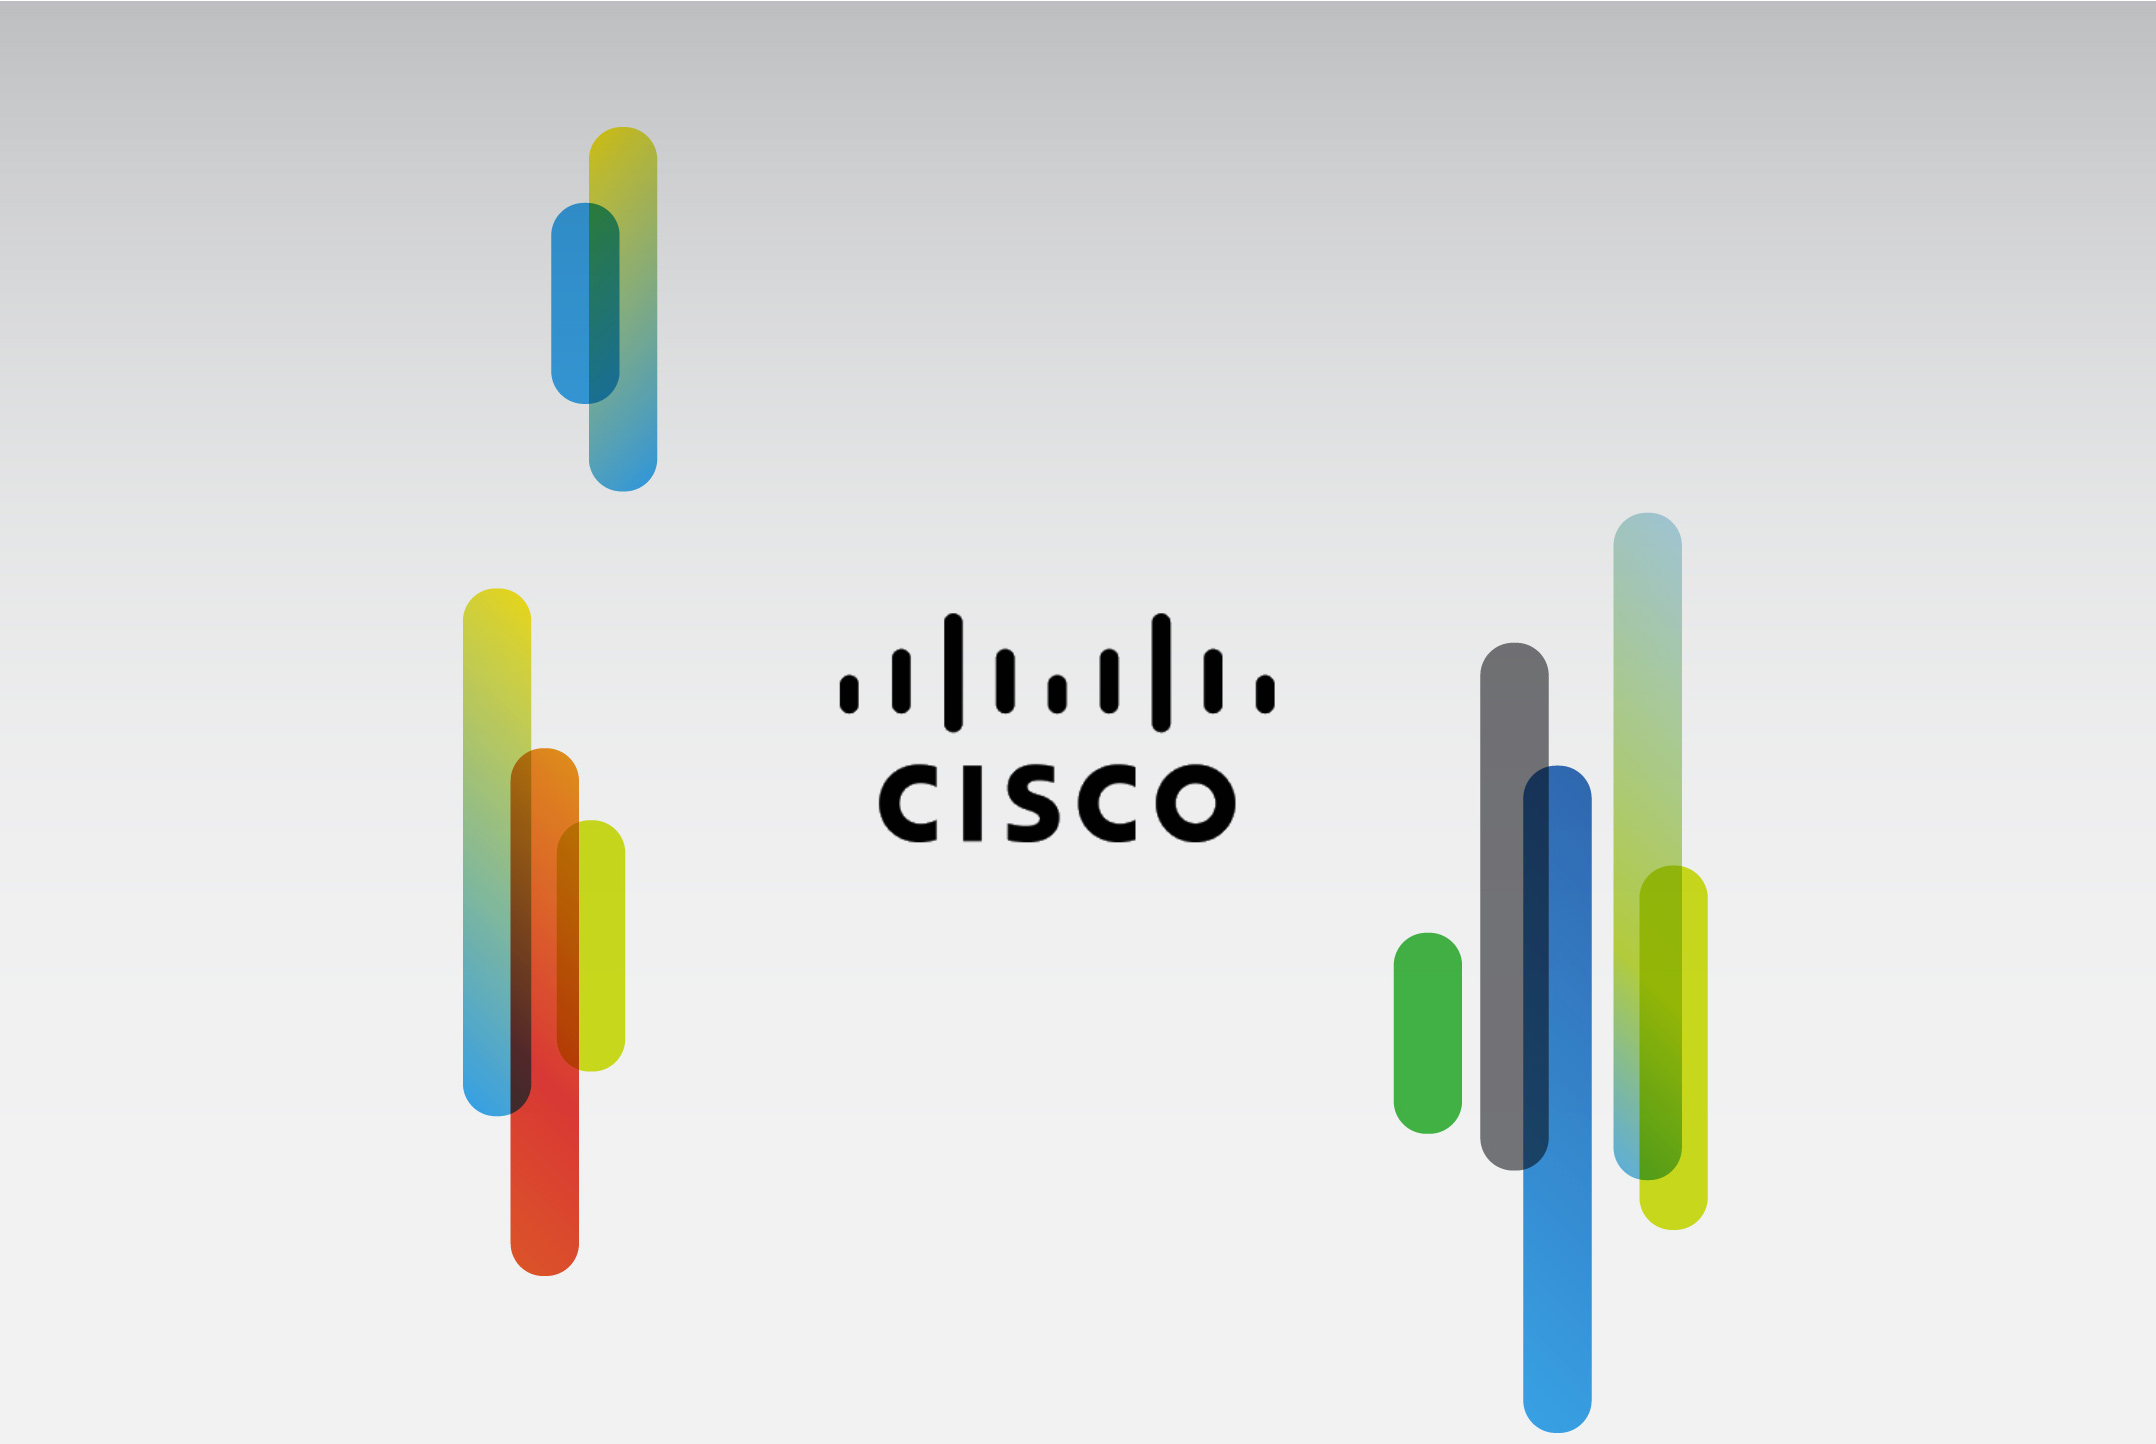 cisco_wallpaper